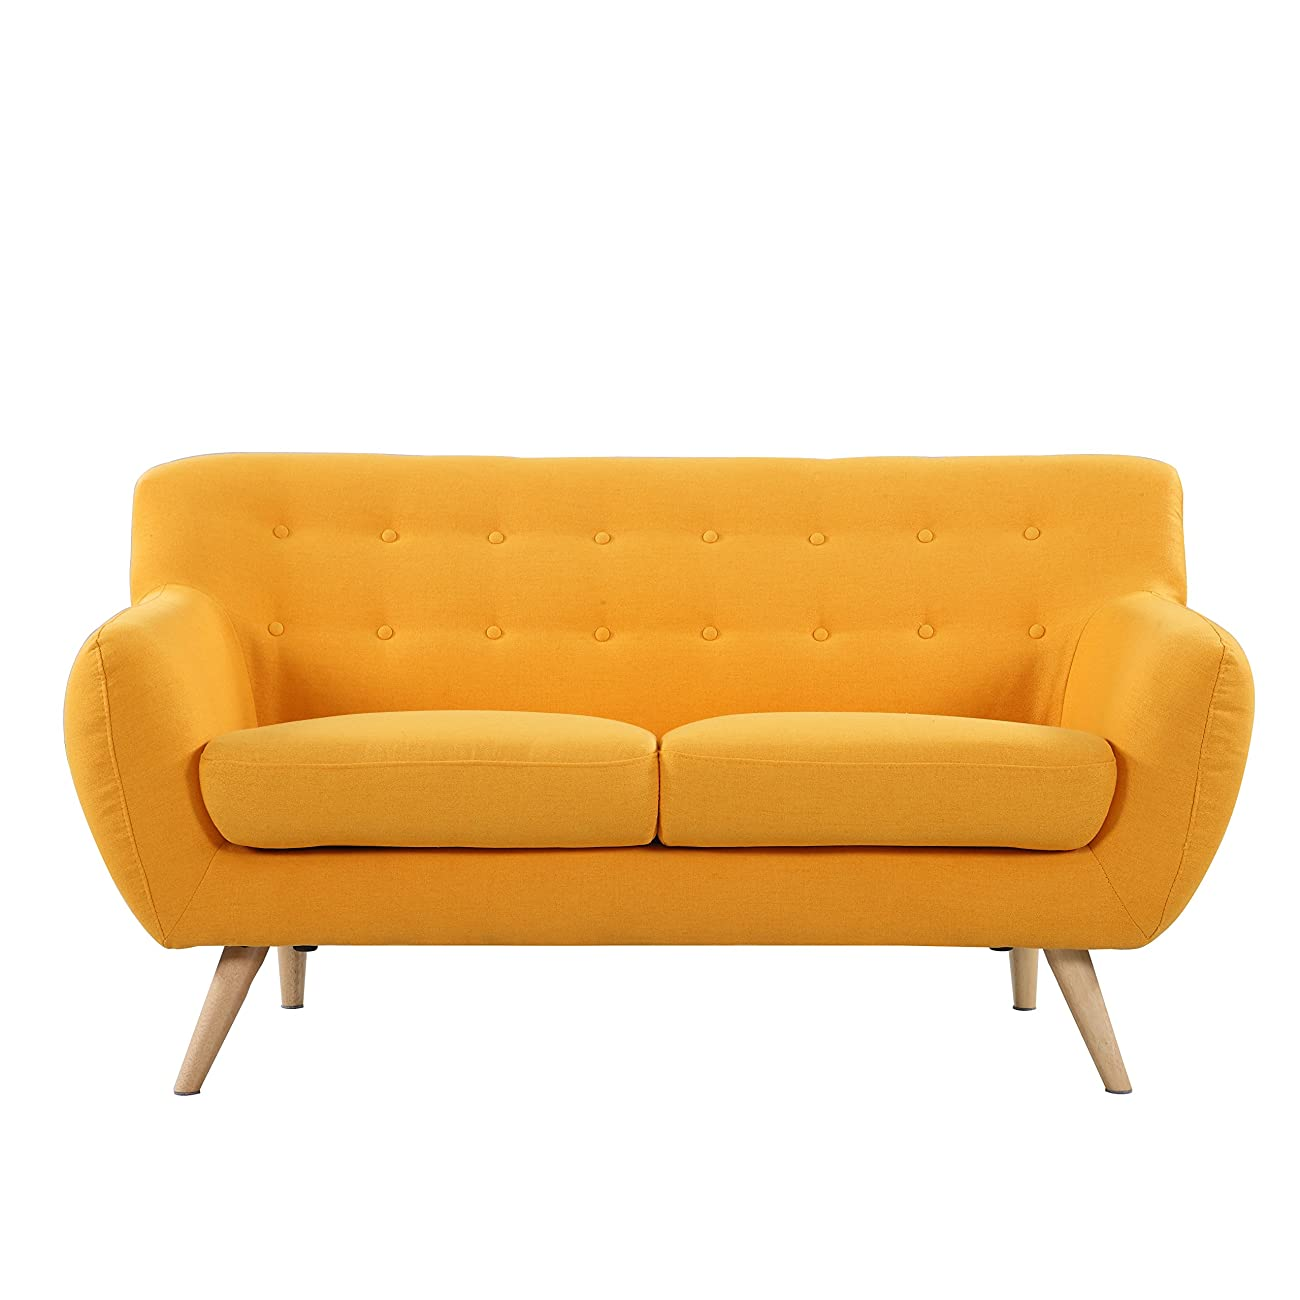 Mid Century Modern Style Sofa / Love Seat Red, Grey, Yellow, Blue - 2 Seat, 3 Seat (Yellow, 2 Seater) 1